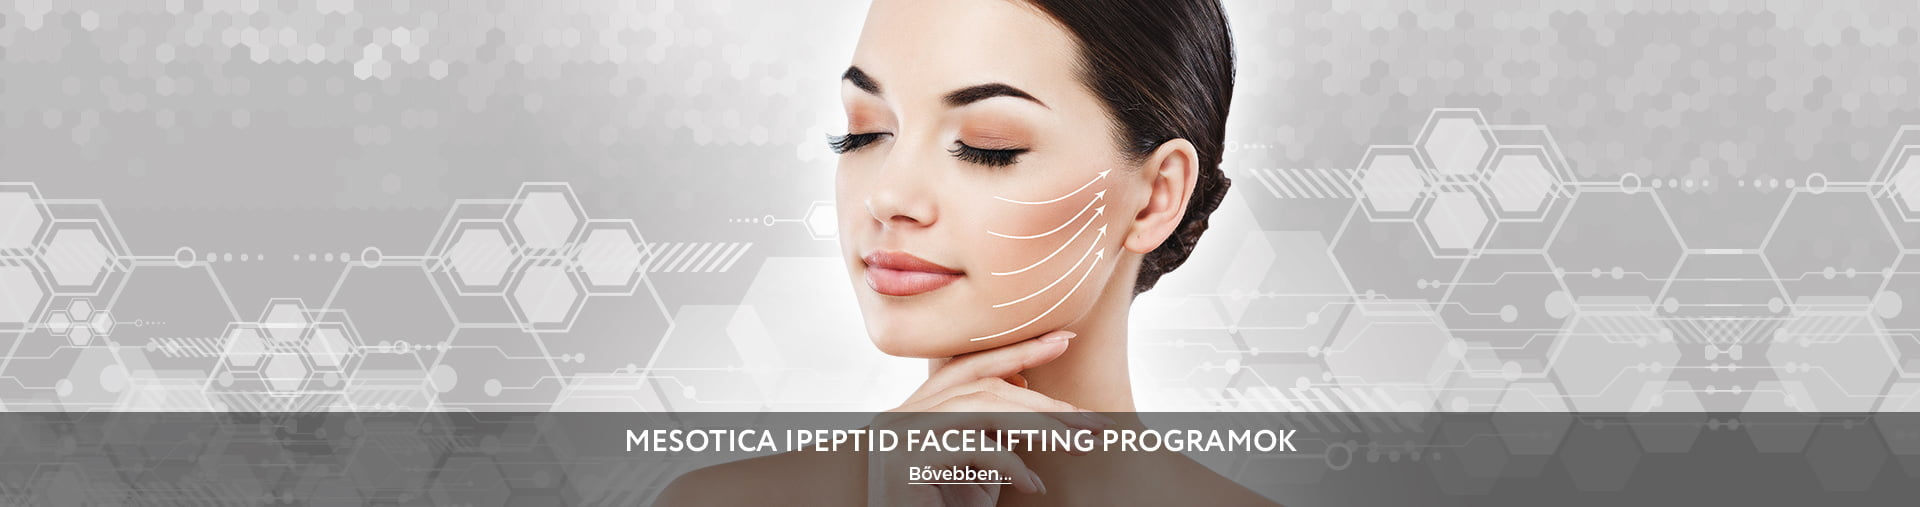 Mesotica Ipeptid facelifting programok